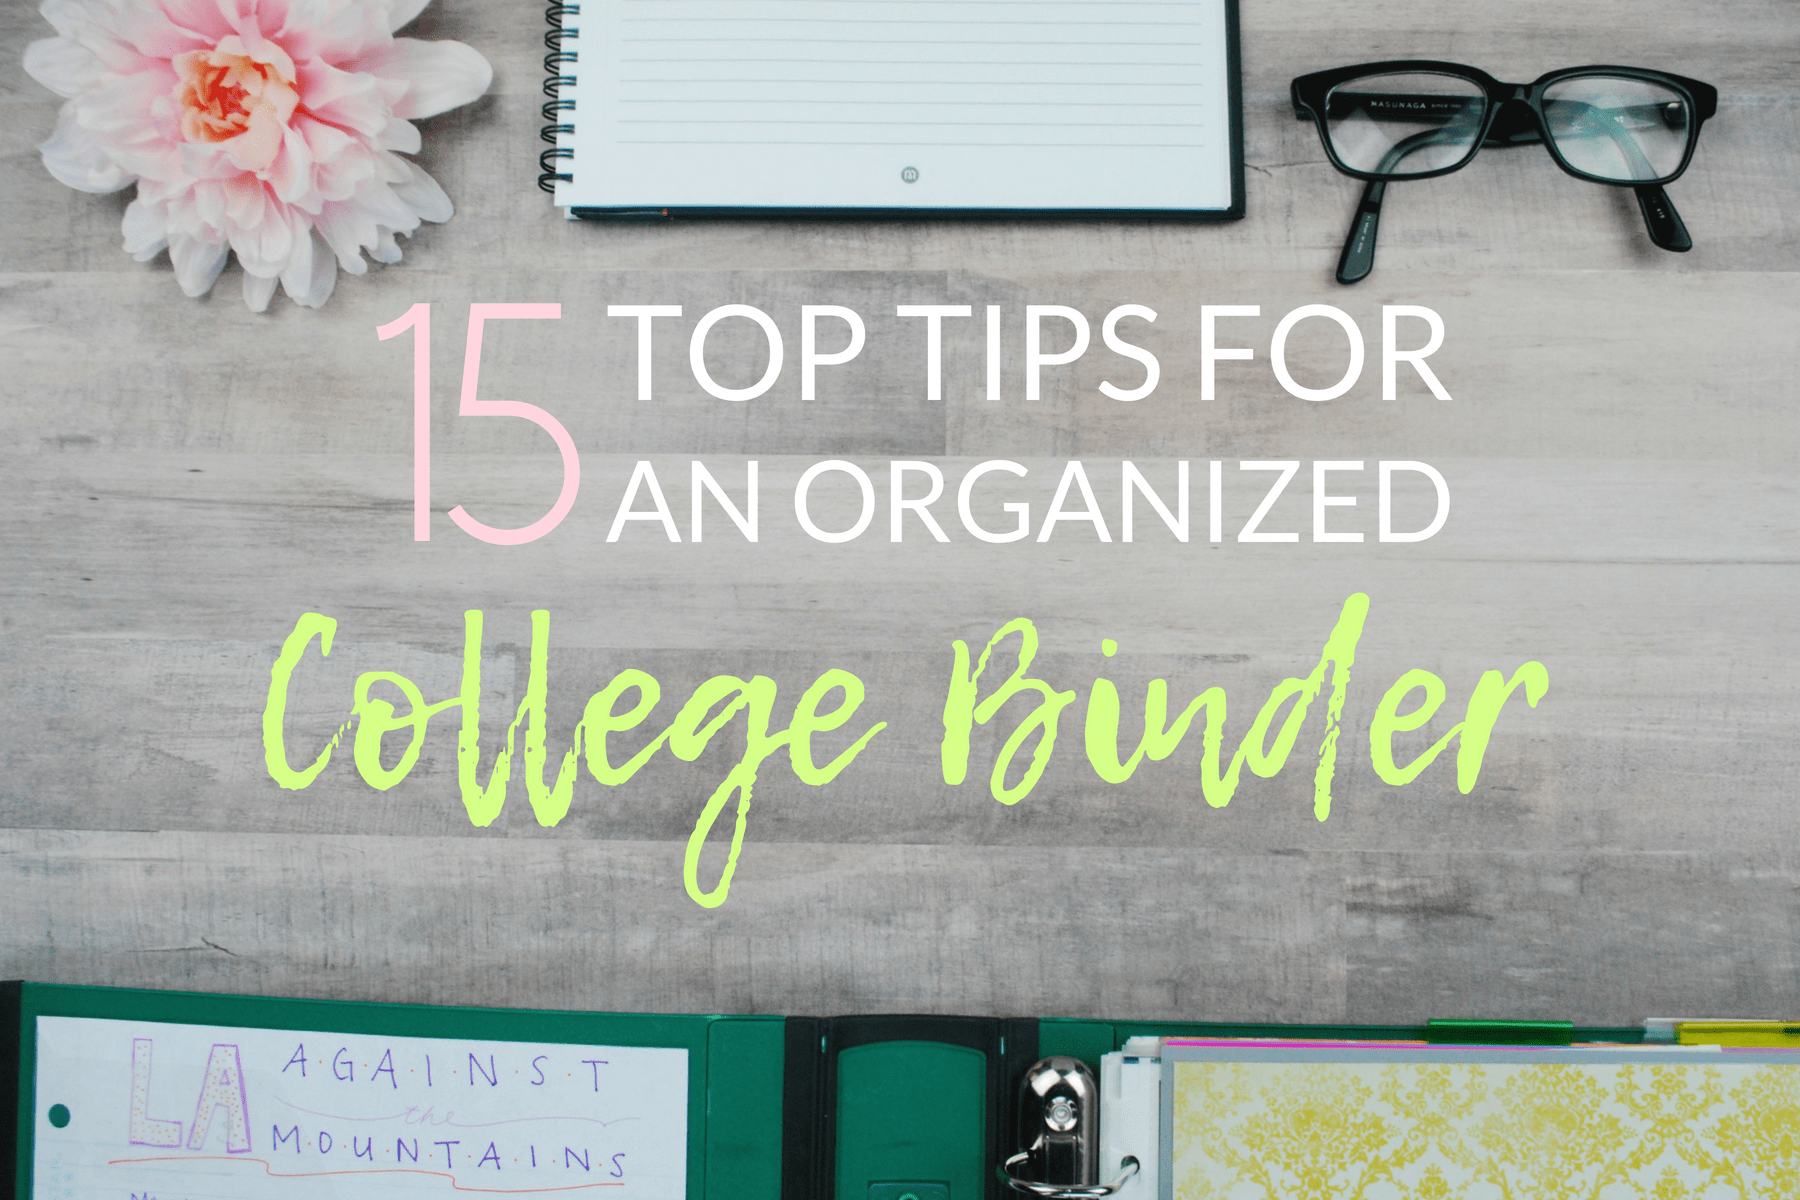 15 Top Tips To An Organized College Binder The Olden Chapters